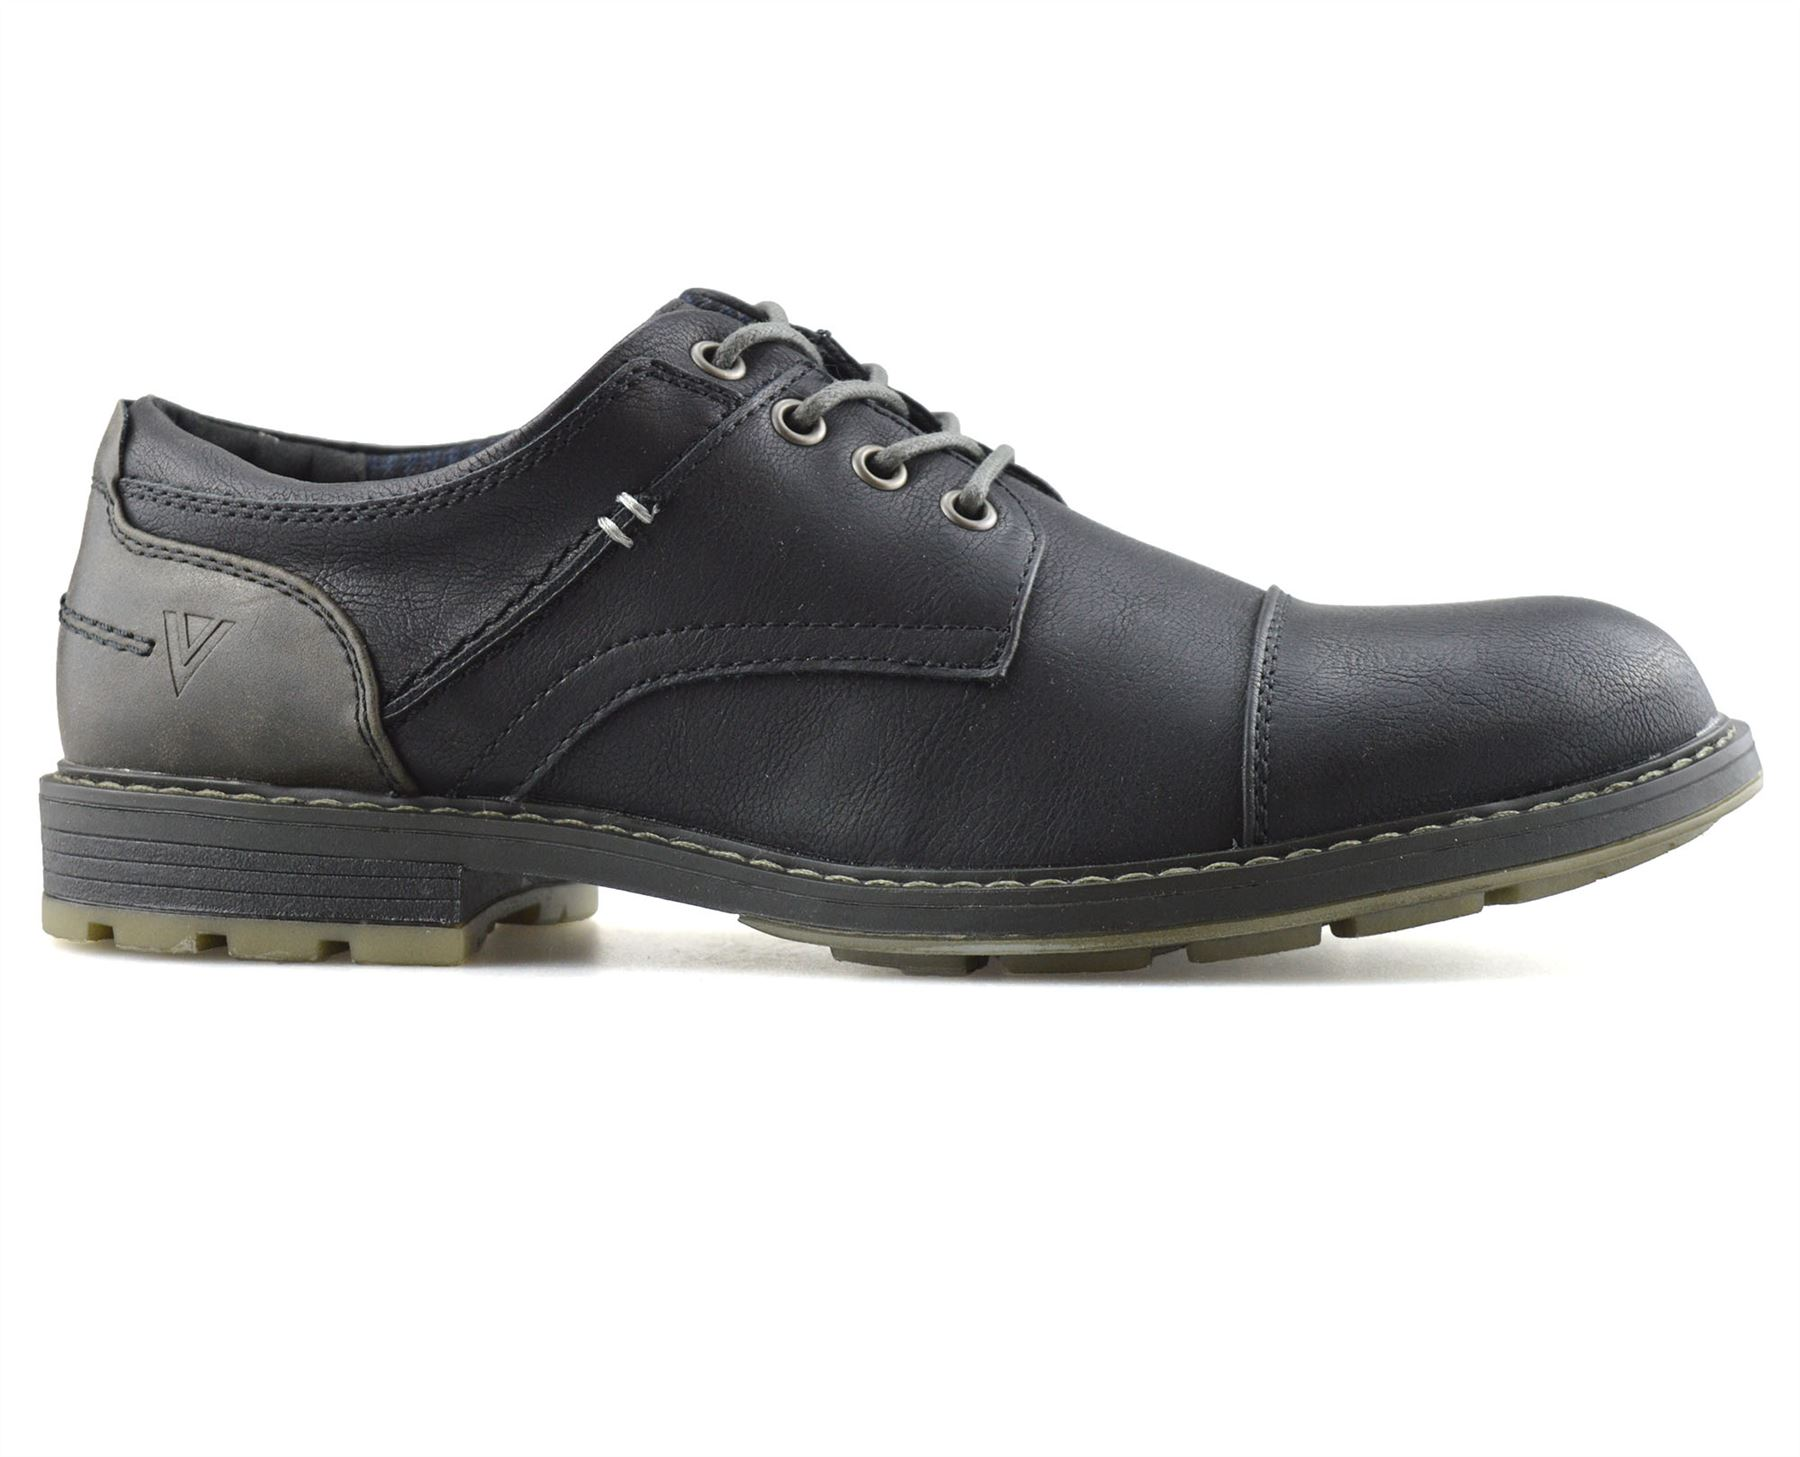 Mens-Smart-Casual-Comfort-Lace-Up-Work-Office-Formal-Derby-Toe-Cap-Shoes-Size thumbnail 9